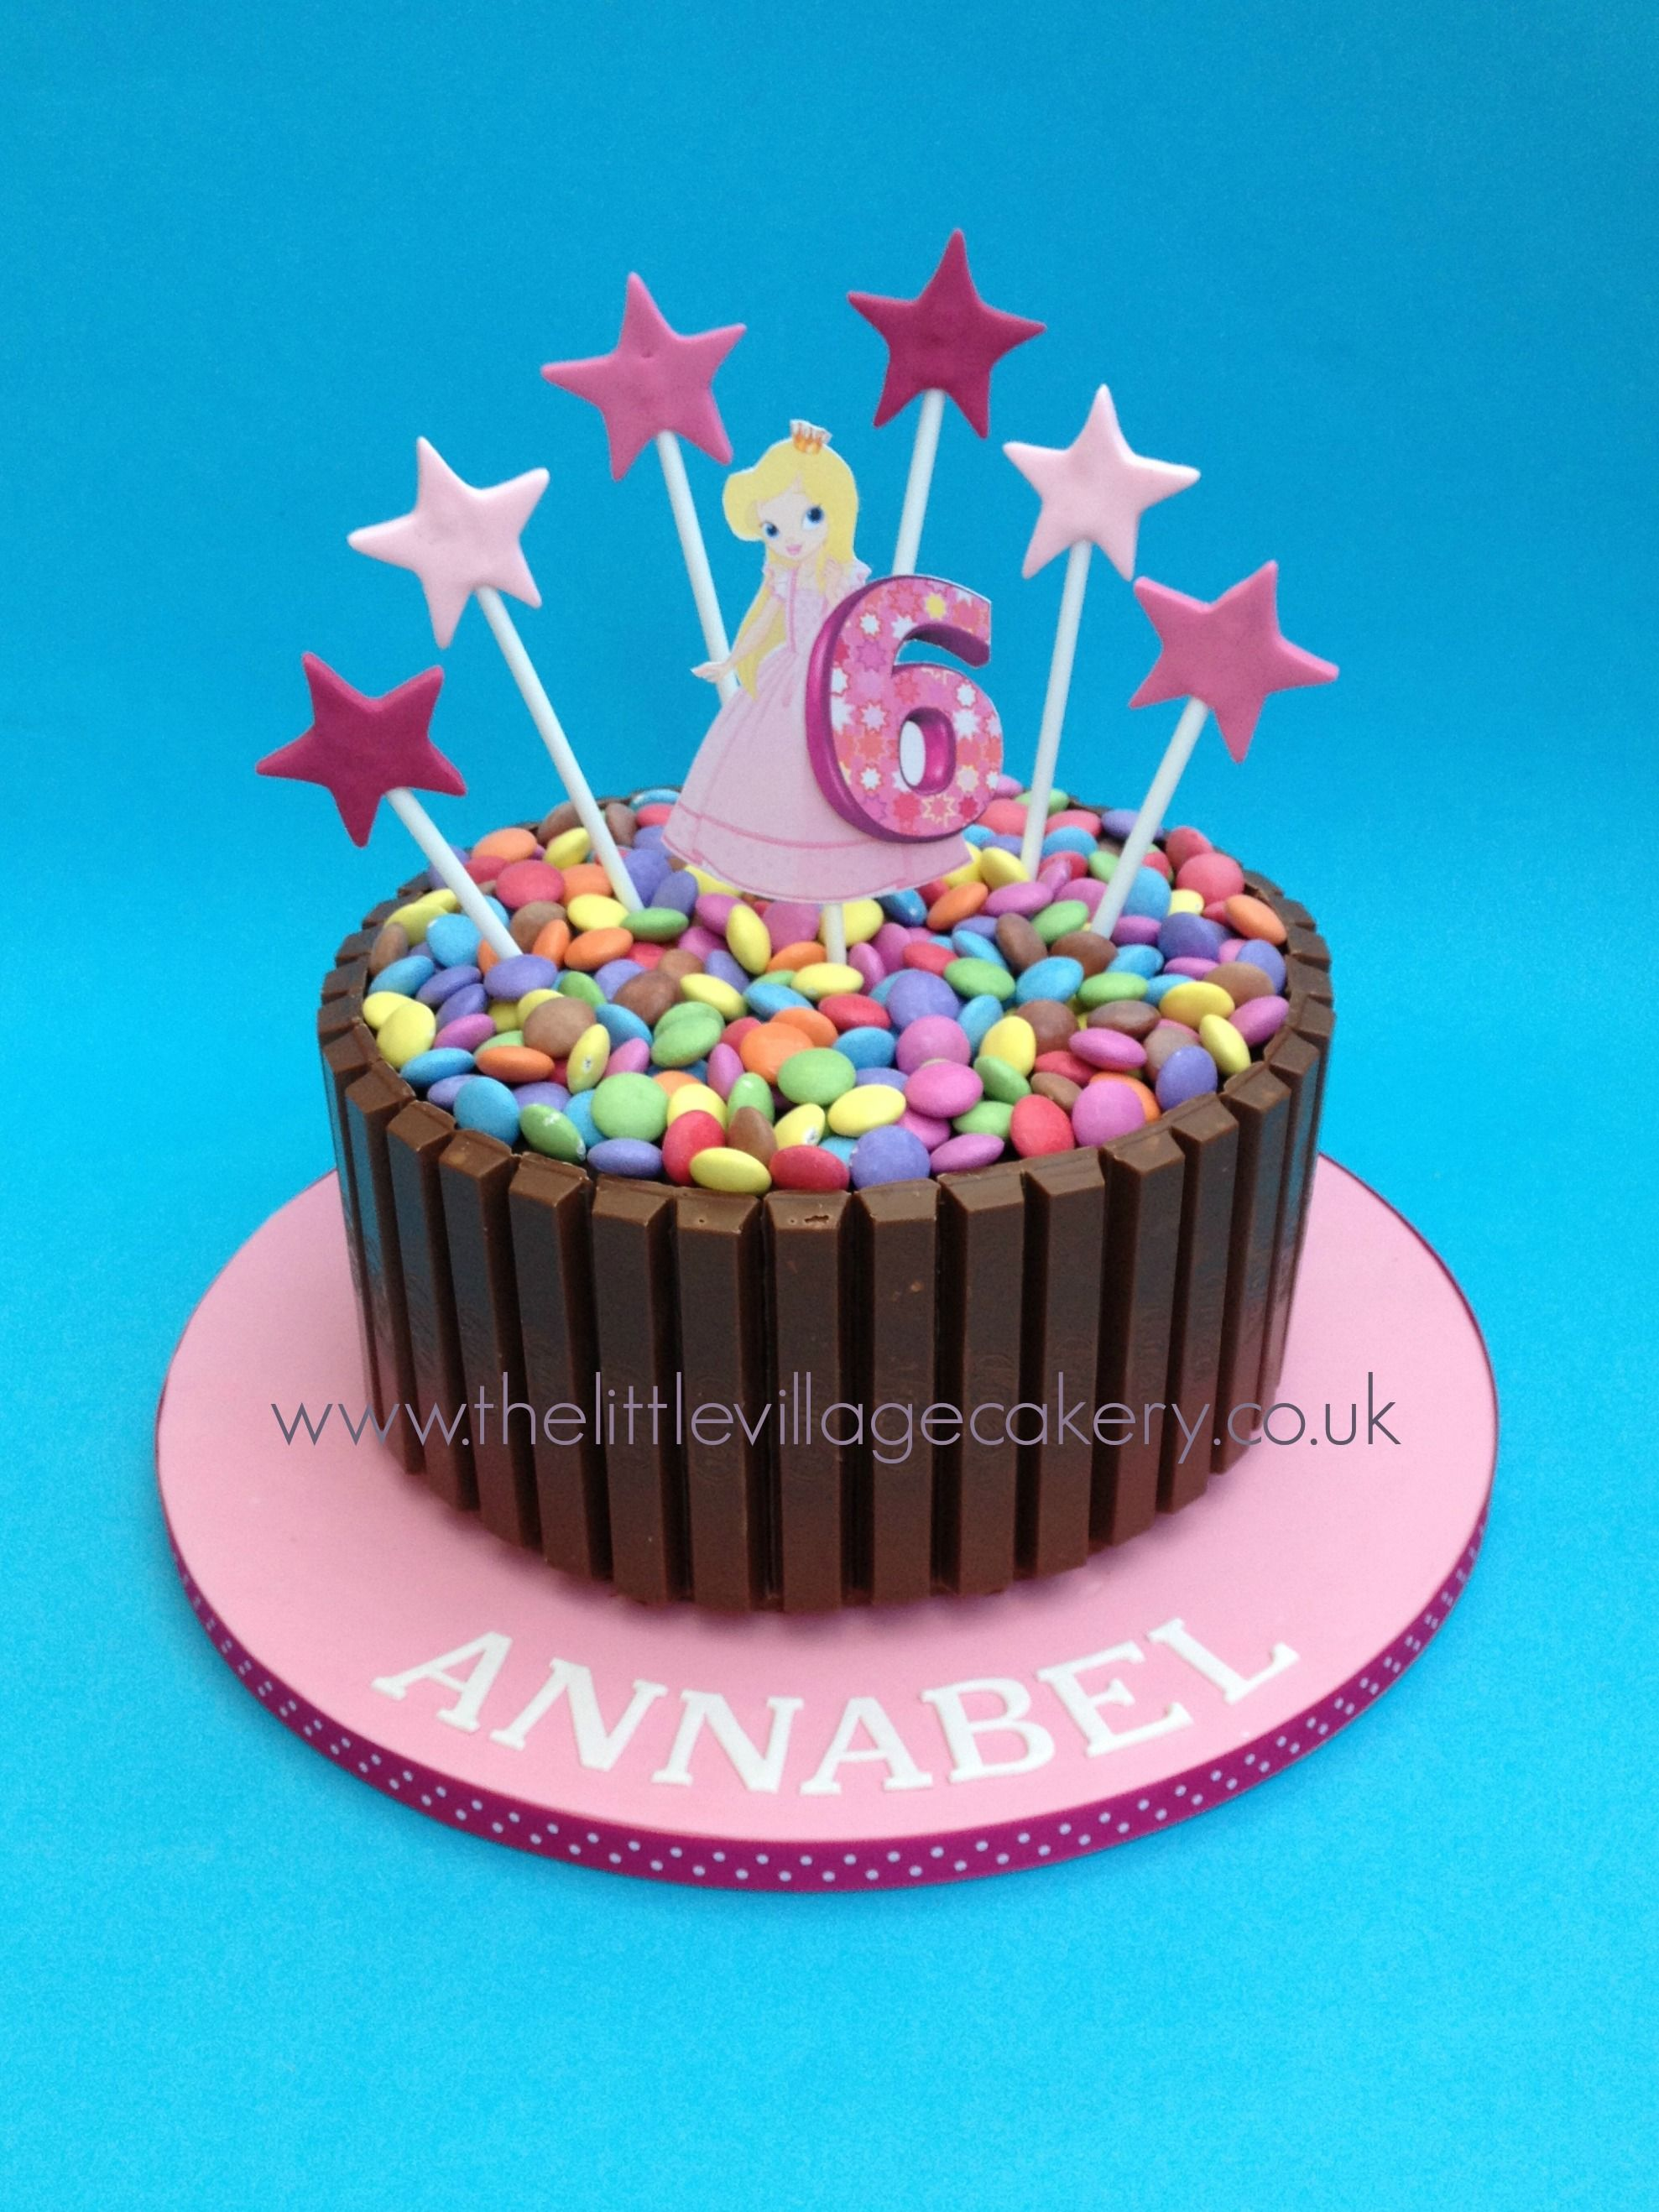 Cake Decorating Ideas With Smarties : Kitkat Smarties cake Rainbow party Pinterest ...